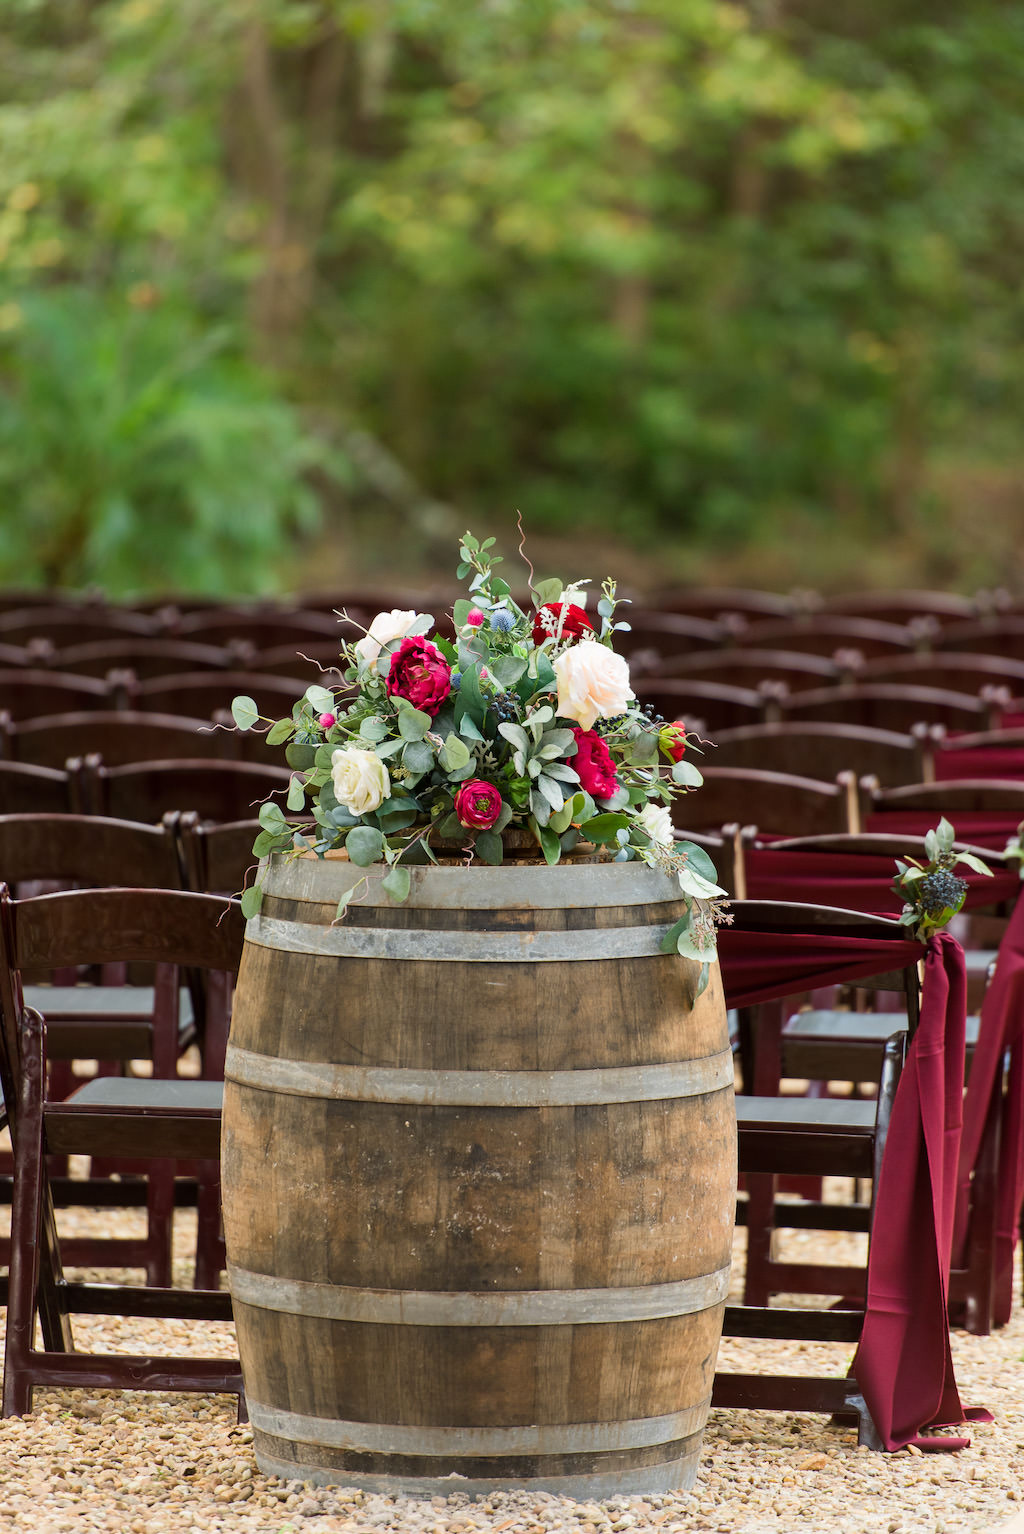 Rustic Outdoor Wedding Ceremony Decor, Wooden Barre with Greenery, Ivory, Burgundy Floral Bouquet, Wooden Folding Chairs and Burgundy Sashes